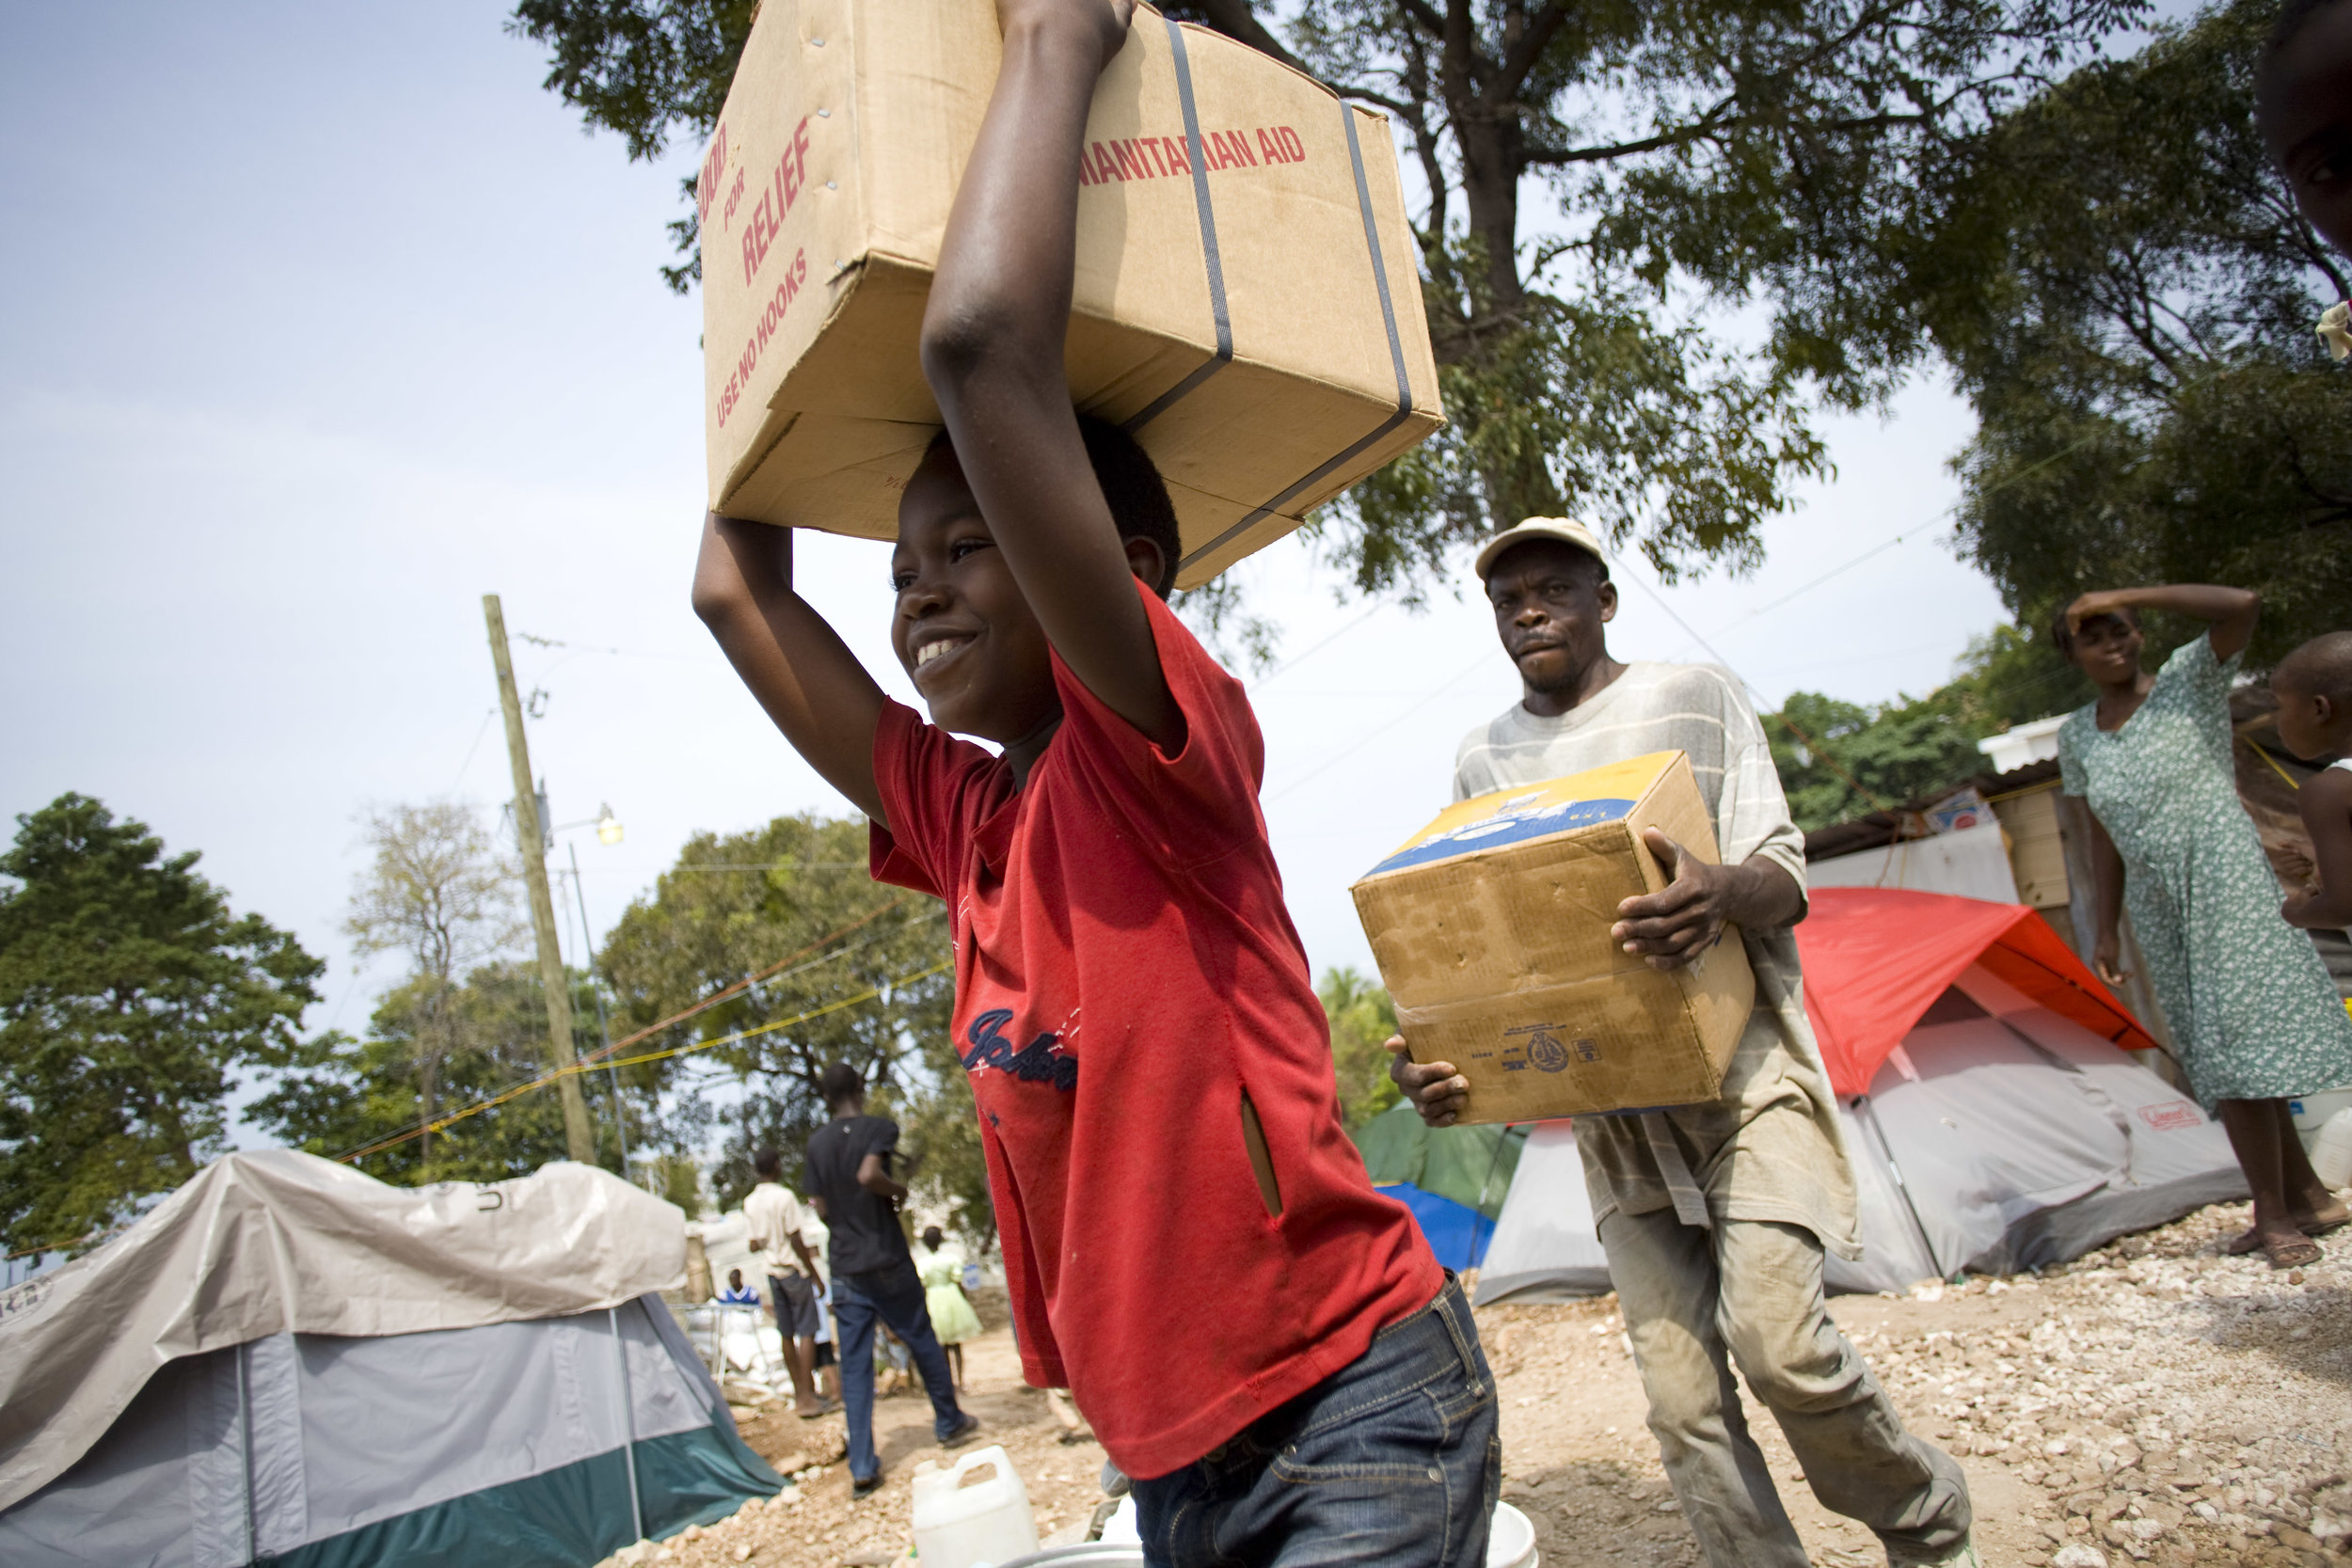 For immediate response, MCC provided canned meat and material aid to local communities. Nicholas Mardoche, pictured above, carries a case of canned meat from a delivery truck to a storehouse in the camp where he lived.